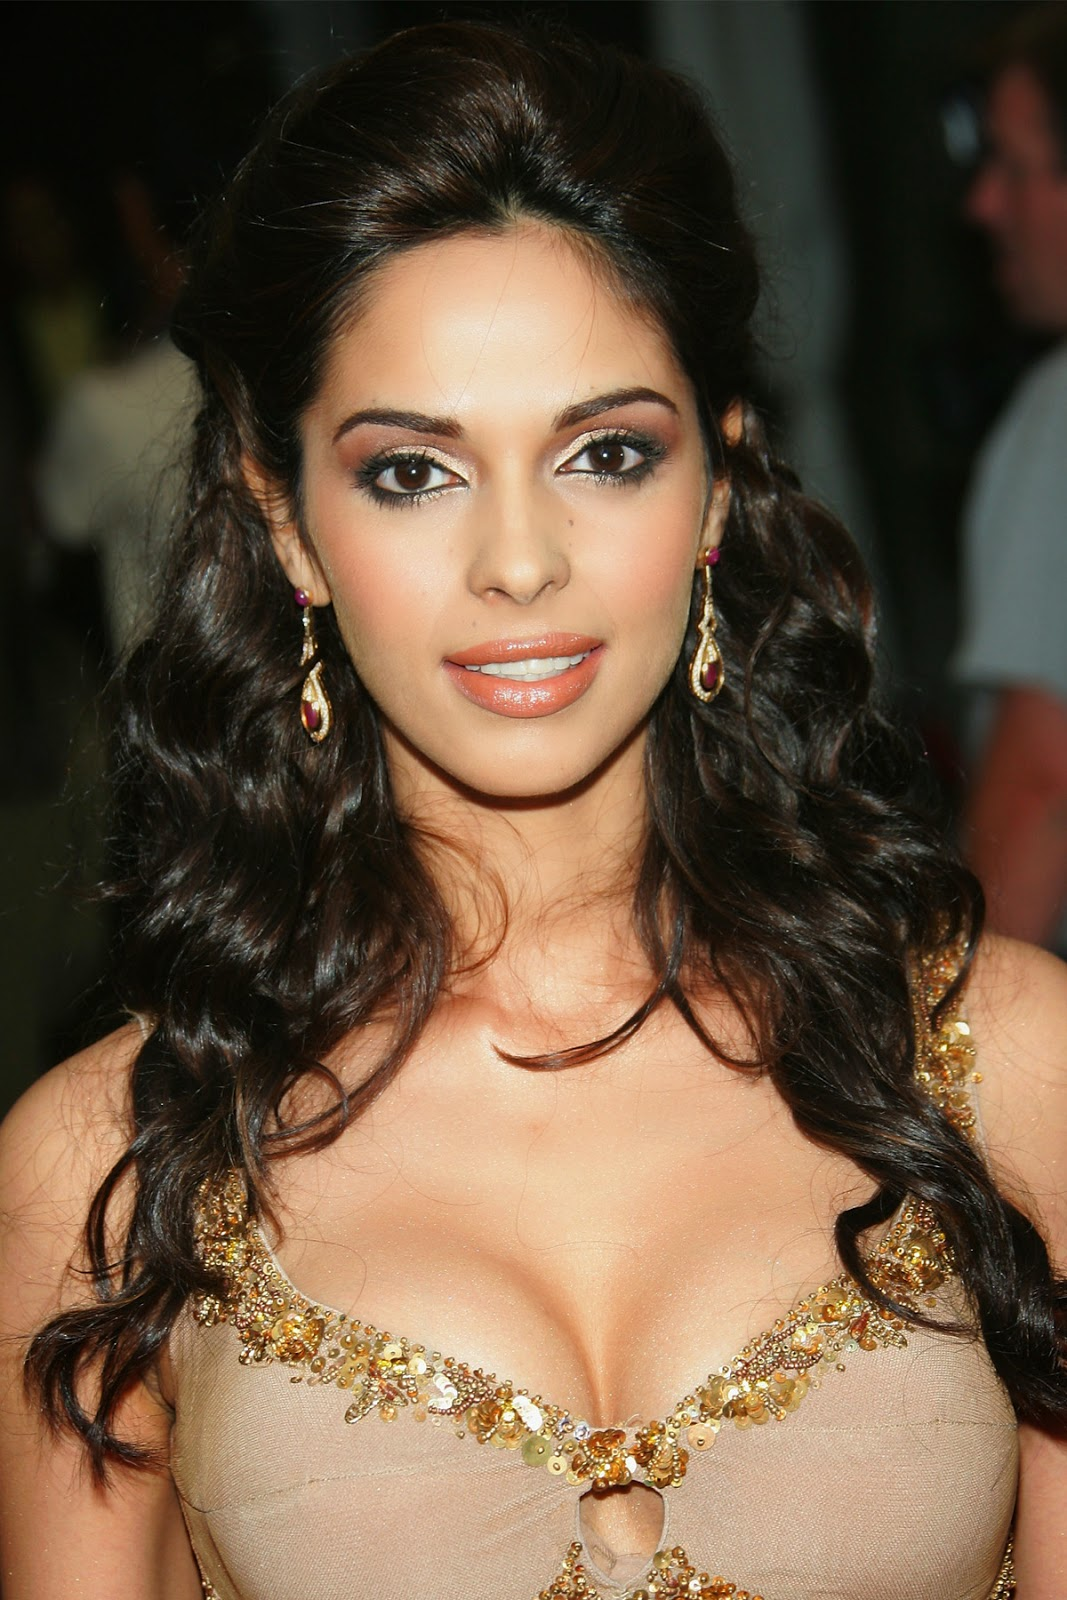 wallpapers mallika sherawat bikini - photo #9